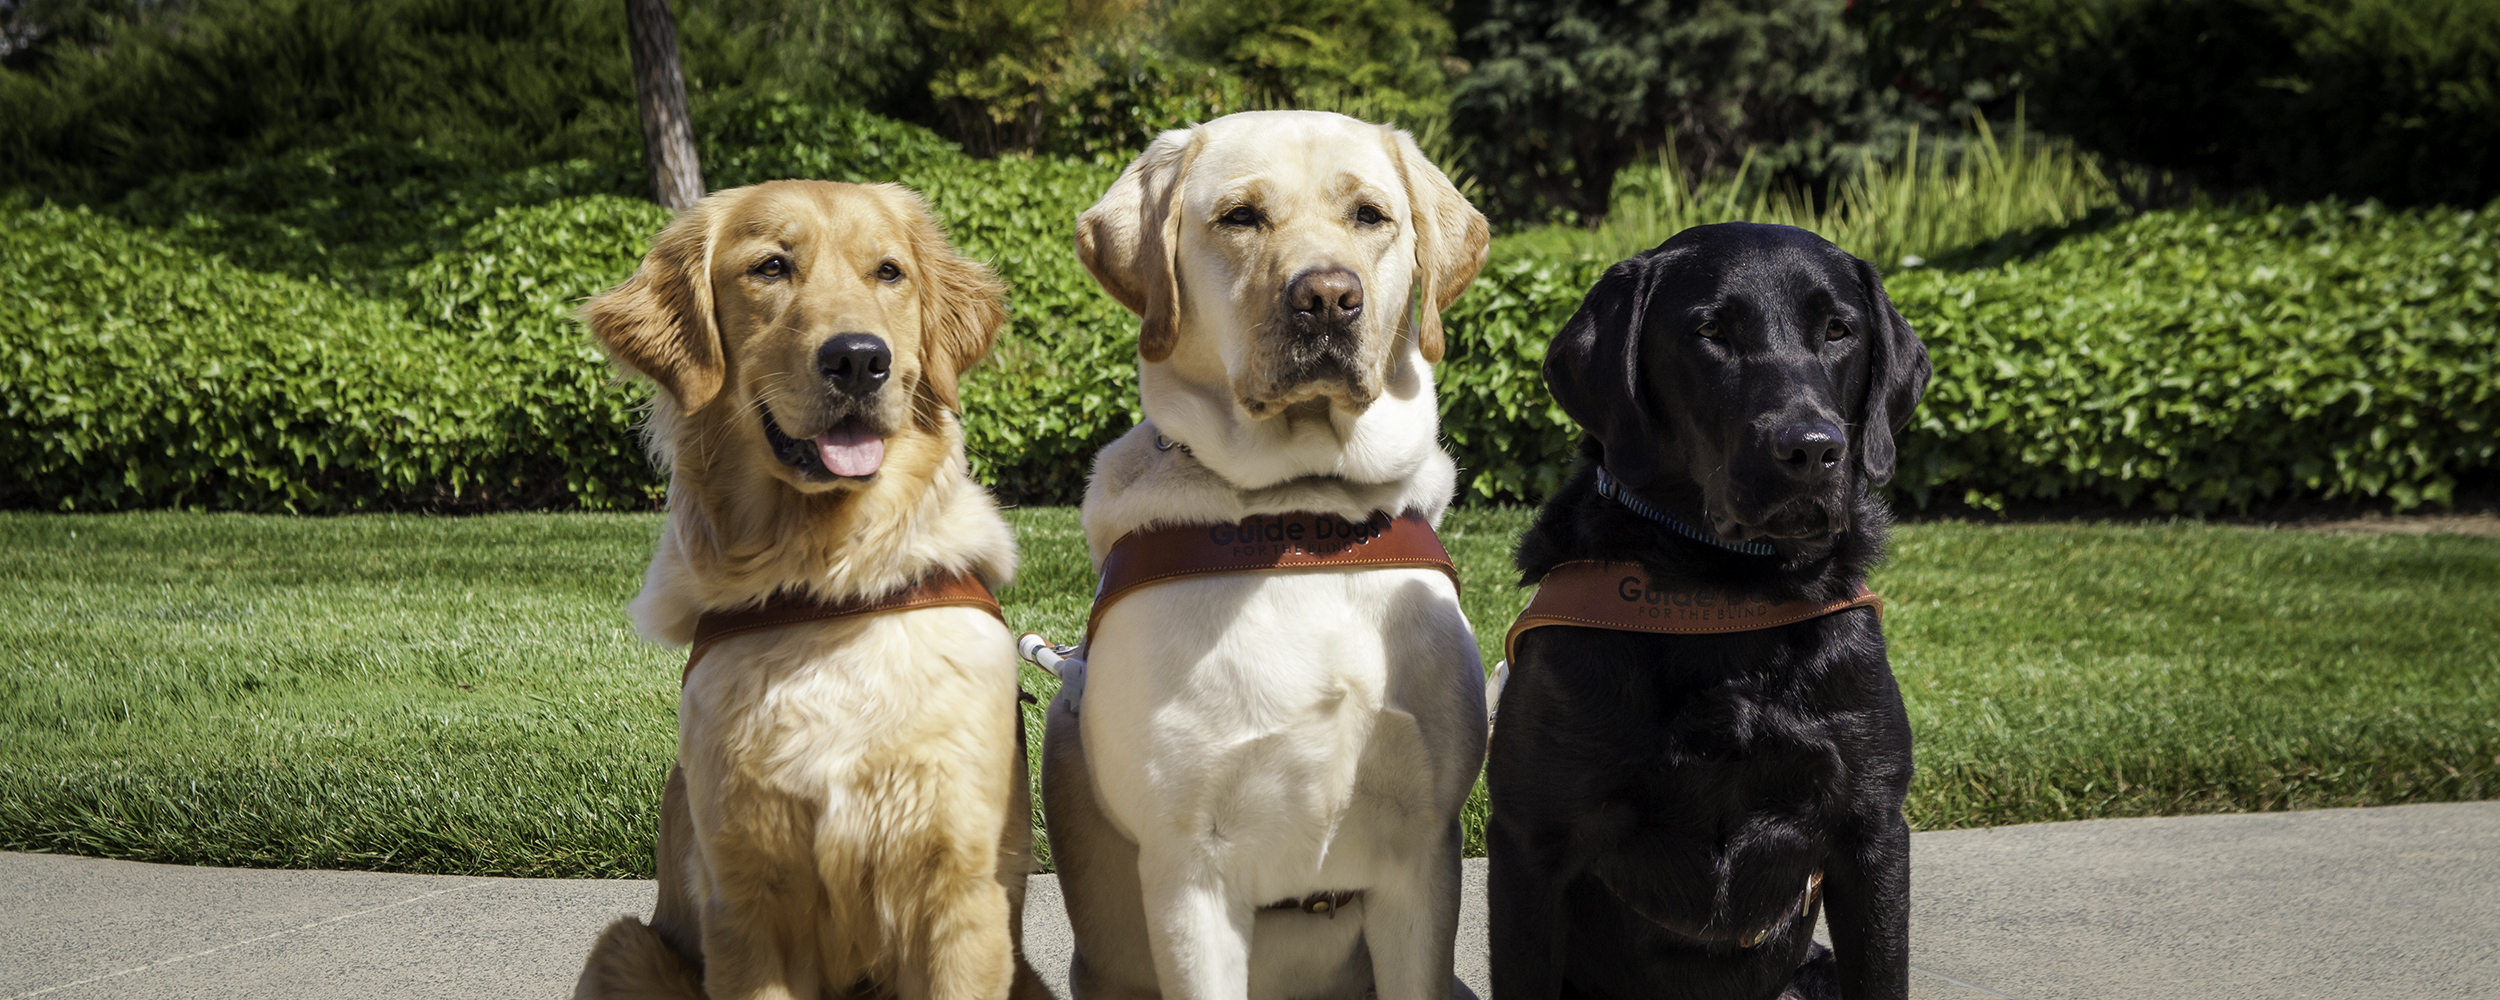 Three guide dogs (a Golden Retriever, Yellow Lab, and Black Lab) sit looking at the camera